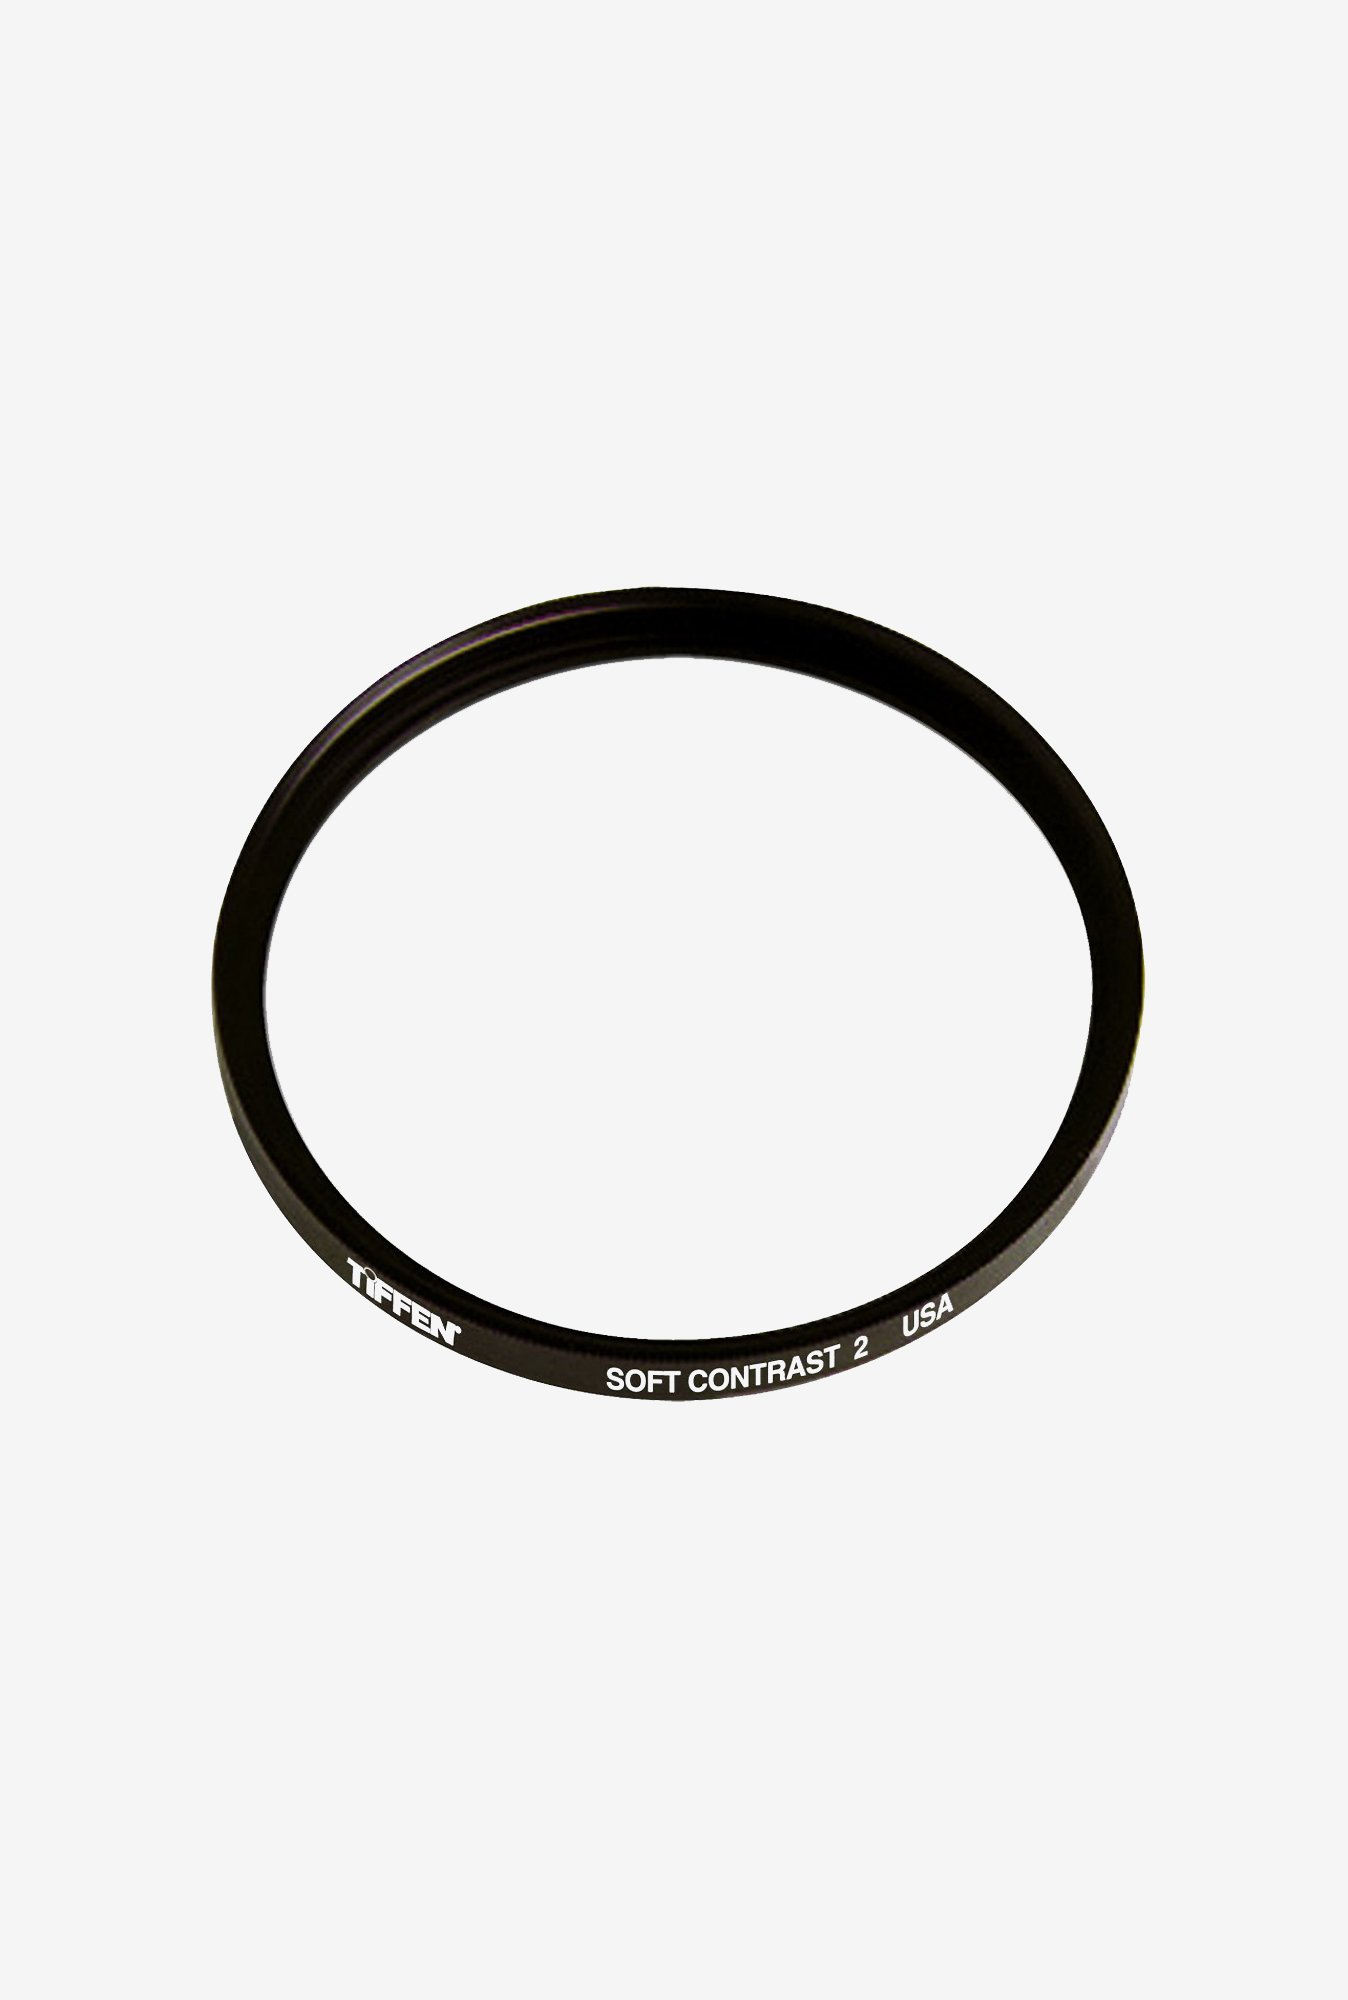 Tiffen 49SC2 49mm Soft Contrast 2 Filter (Black)